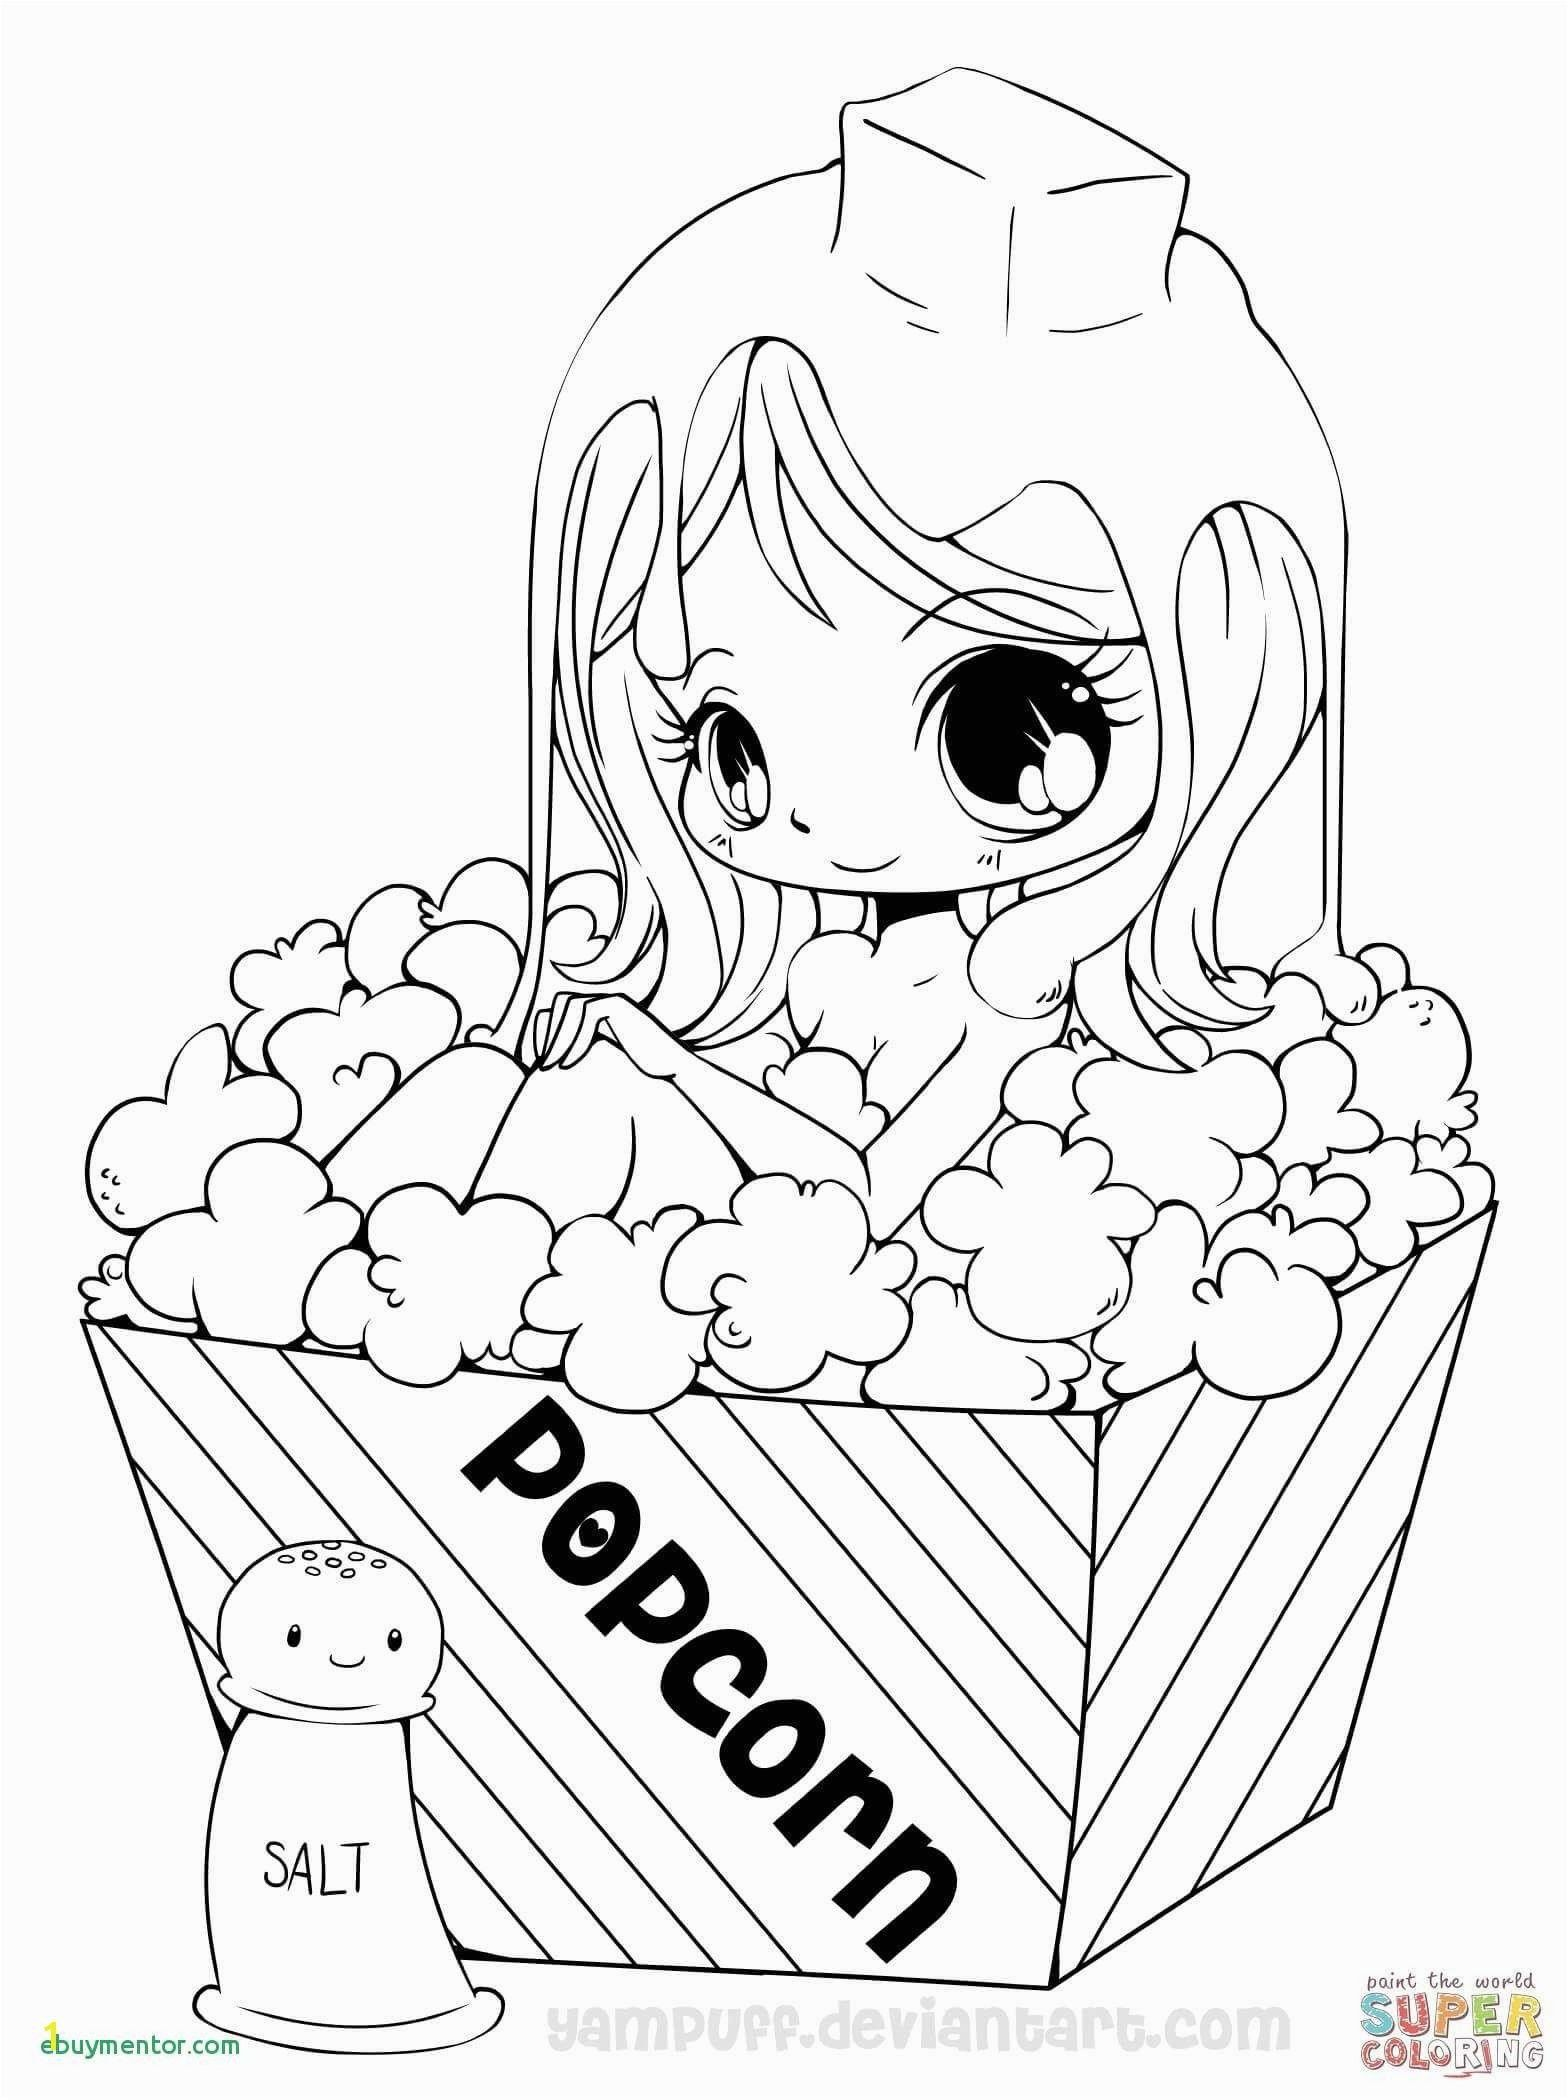 Cute Anime Coloring Pages Inspirational Beautiful Cute Girly Coloring Pages Chibi Coloring Pages Princess Coloring Pages Superhero Coloring Pages